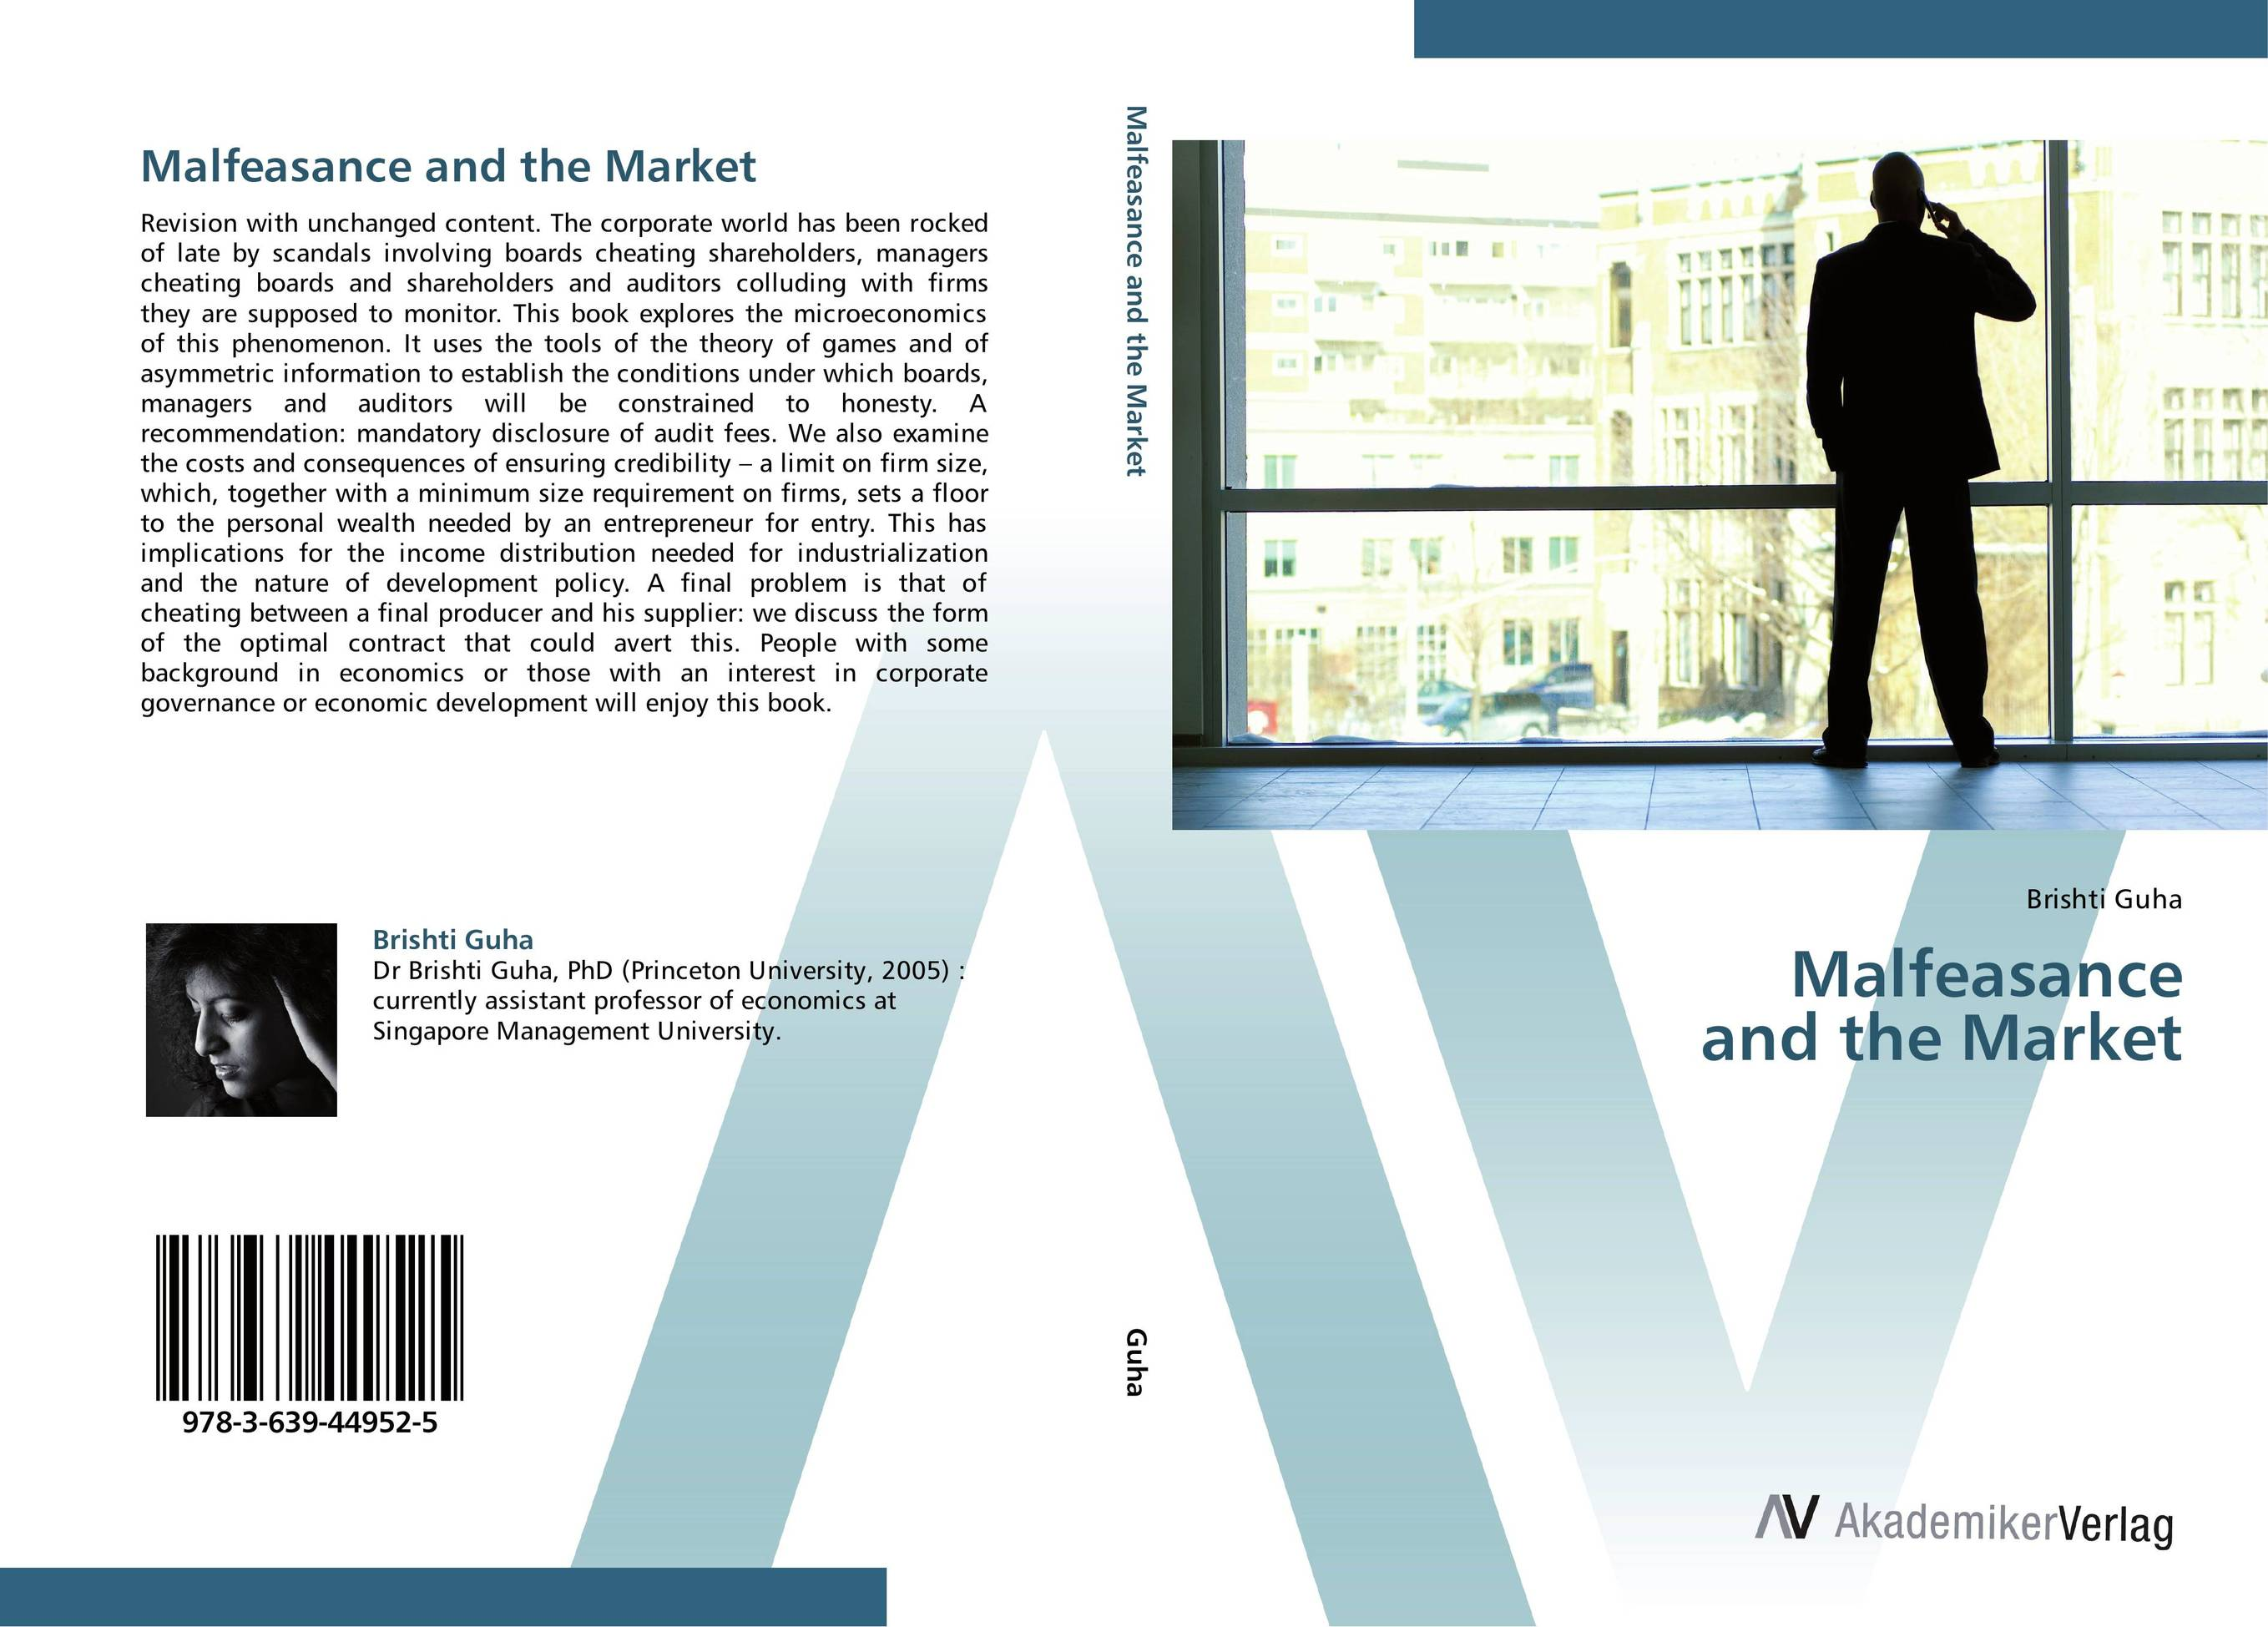 Malfeasance and the Market corporate governance and firm value